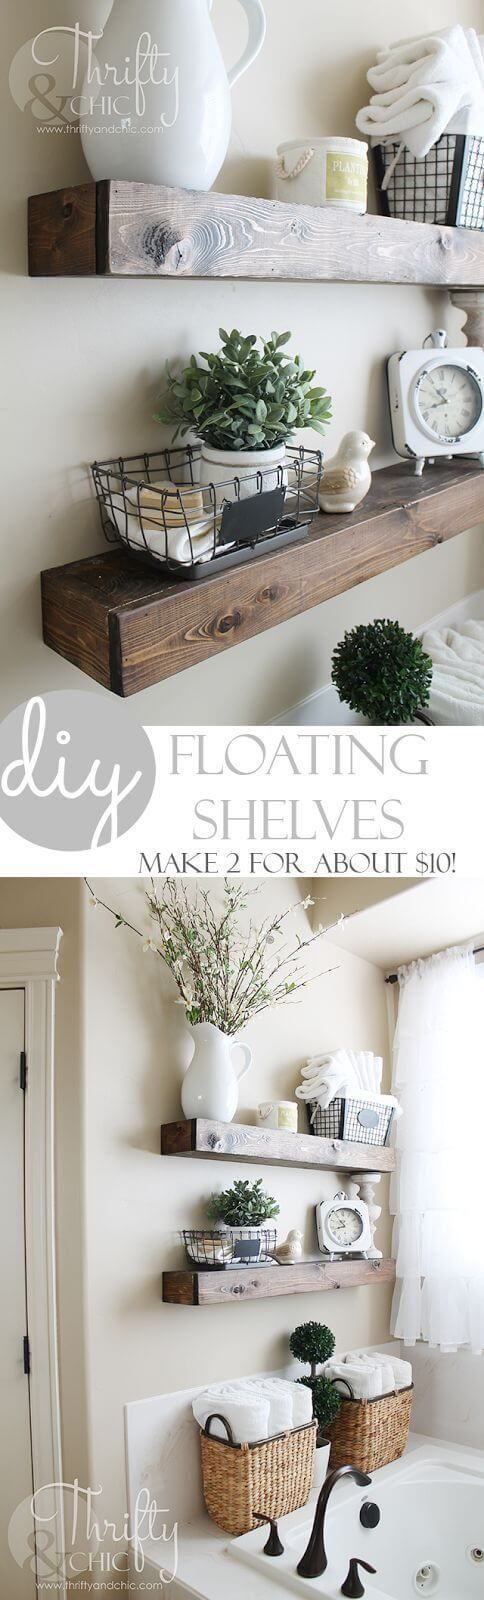 DIY Floating Shelves by Thrifty and Chic | DIY Farmhouse Decor ... on condo fixer upper, silo fixer upper, duplex fixer upper, shabby chic fixer upper, single wide fixer upper, garden fixer upper, victorian fixer upper, chip and joanna gaines fixer upper, craftsman fixer upper, queen anne fixer upper, historic fixer upper, mobile home fixer upper, ranch fixer upper, family fixer upper,